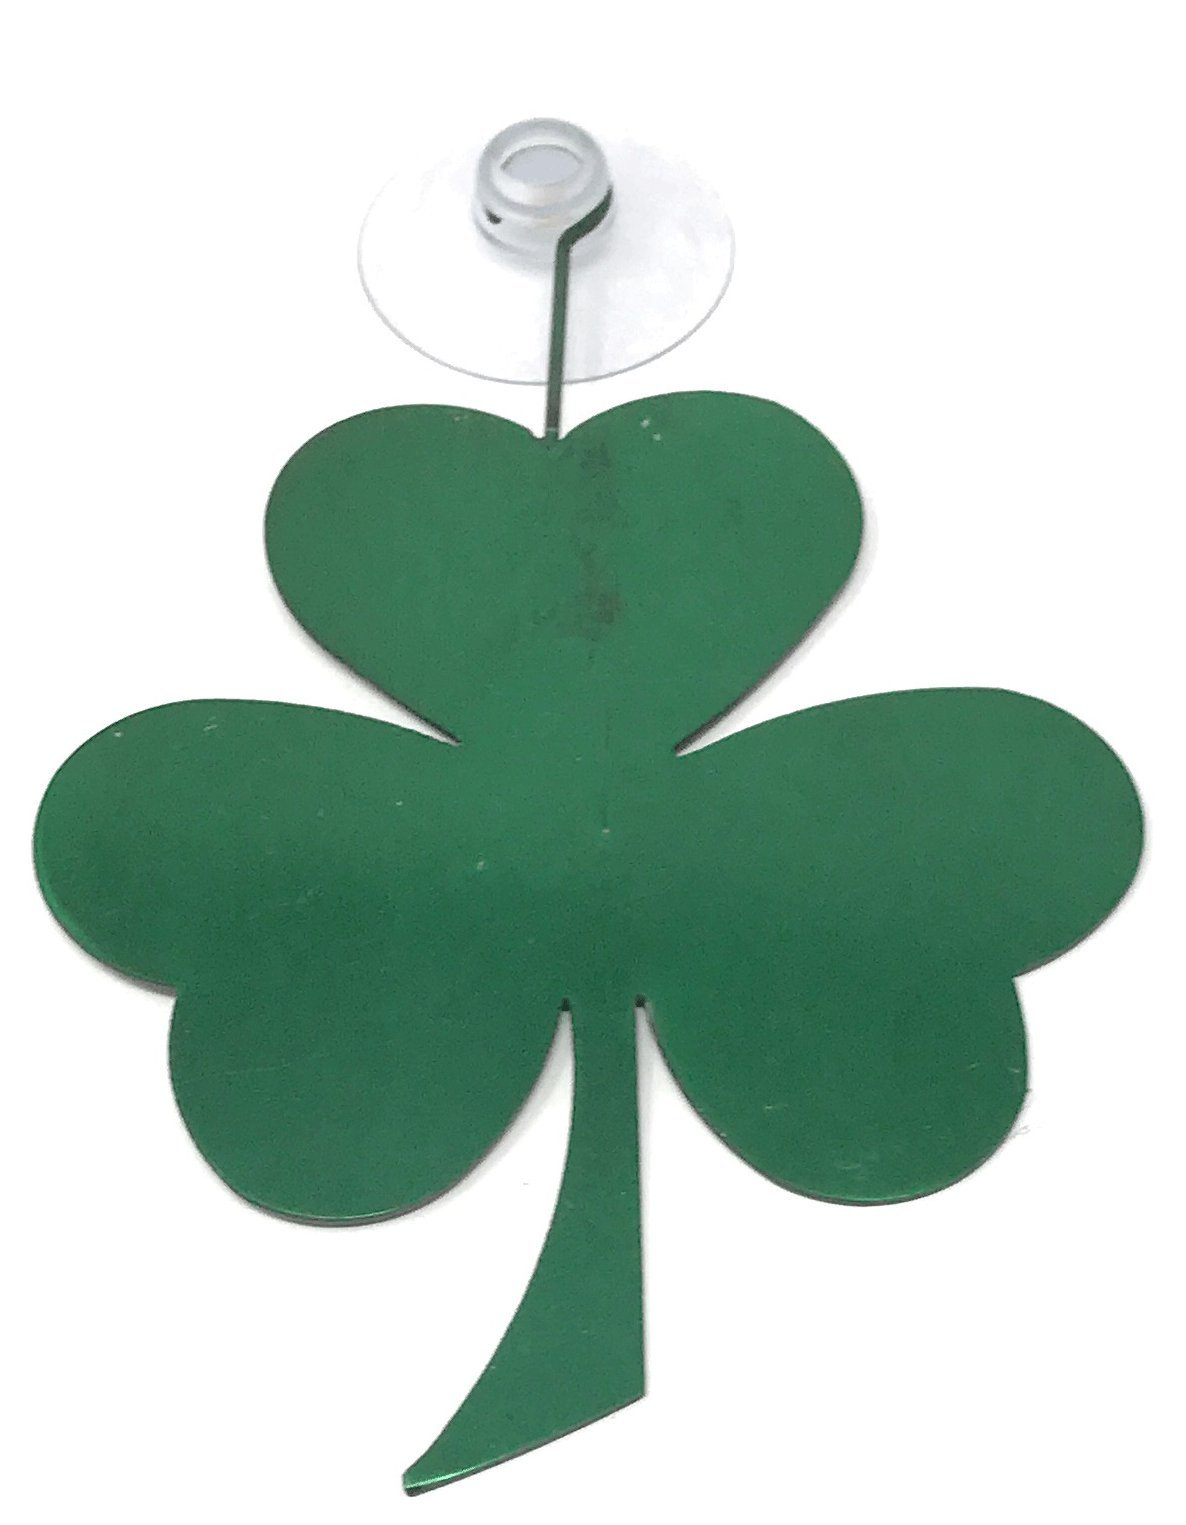 Electroplated Metal Clover Shamrock Window Hanger with Suction Cup